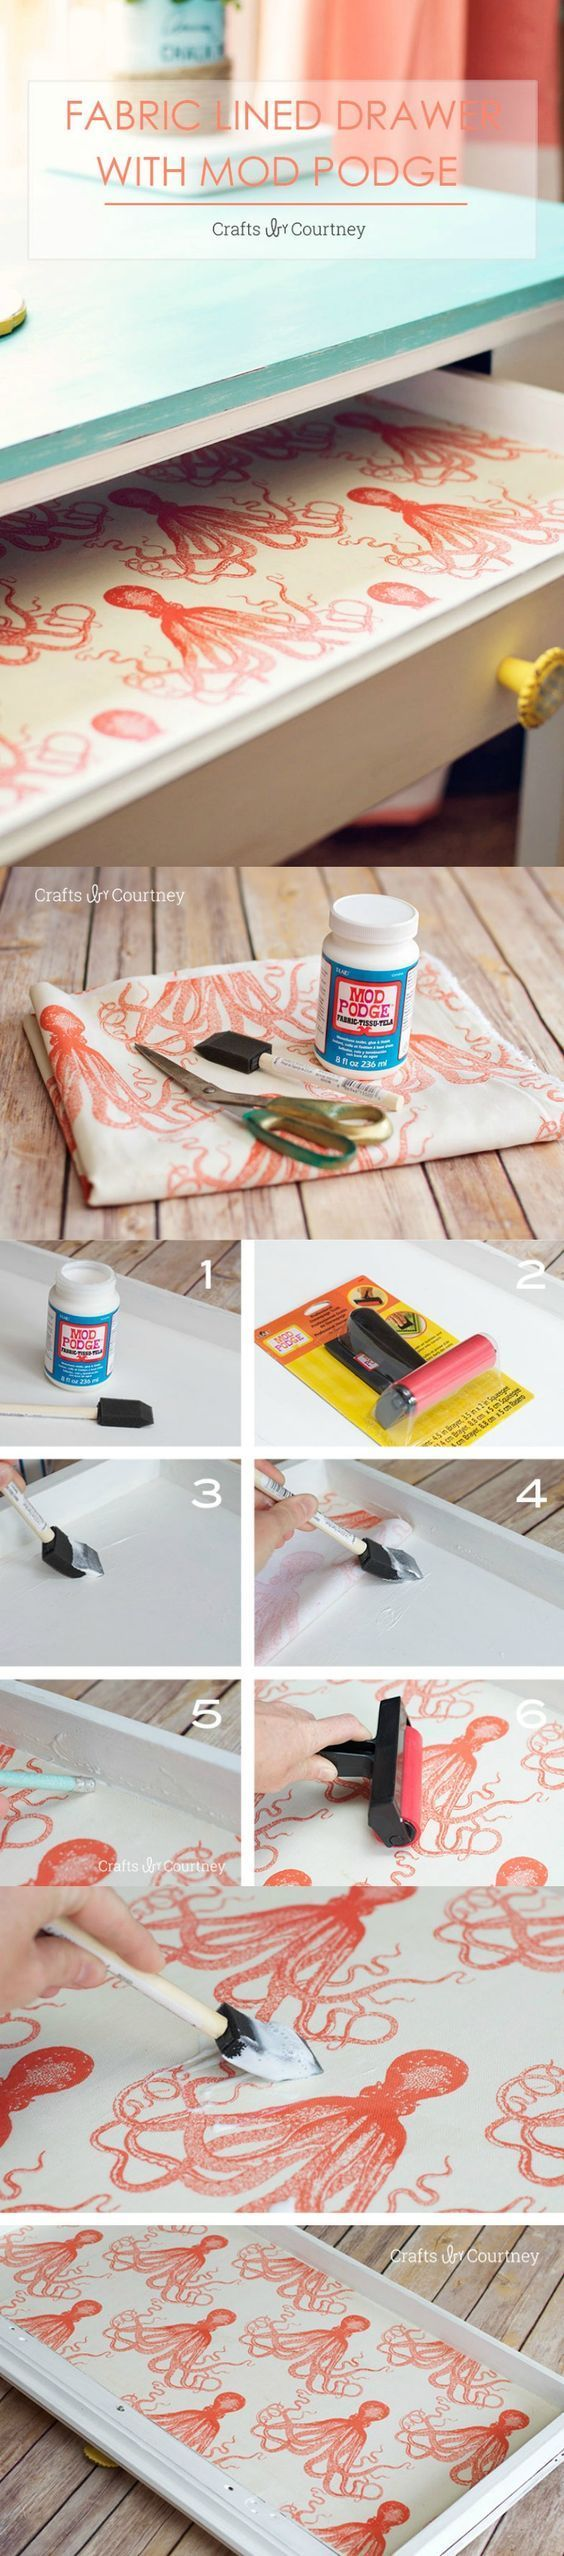 Use Mod Podge and your favorite fabric pattern to create these unique fabric dresser lined drawers. You'll love this DIY! Use the same method with wallpaper - or to line shelves.